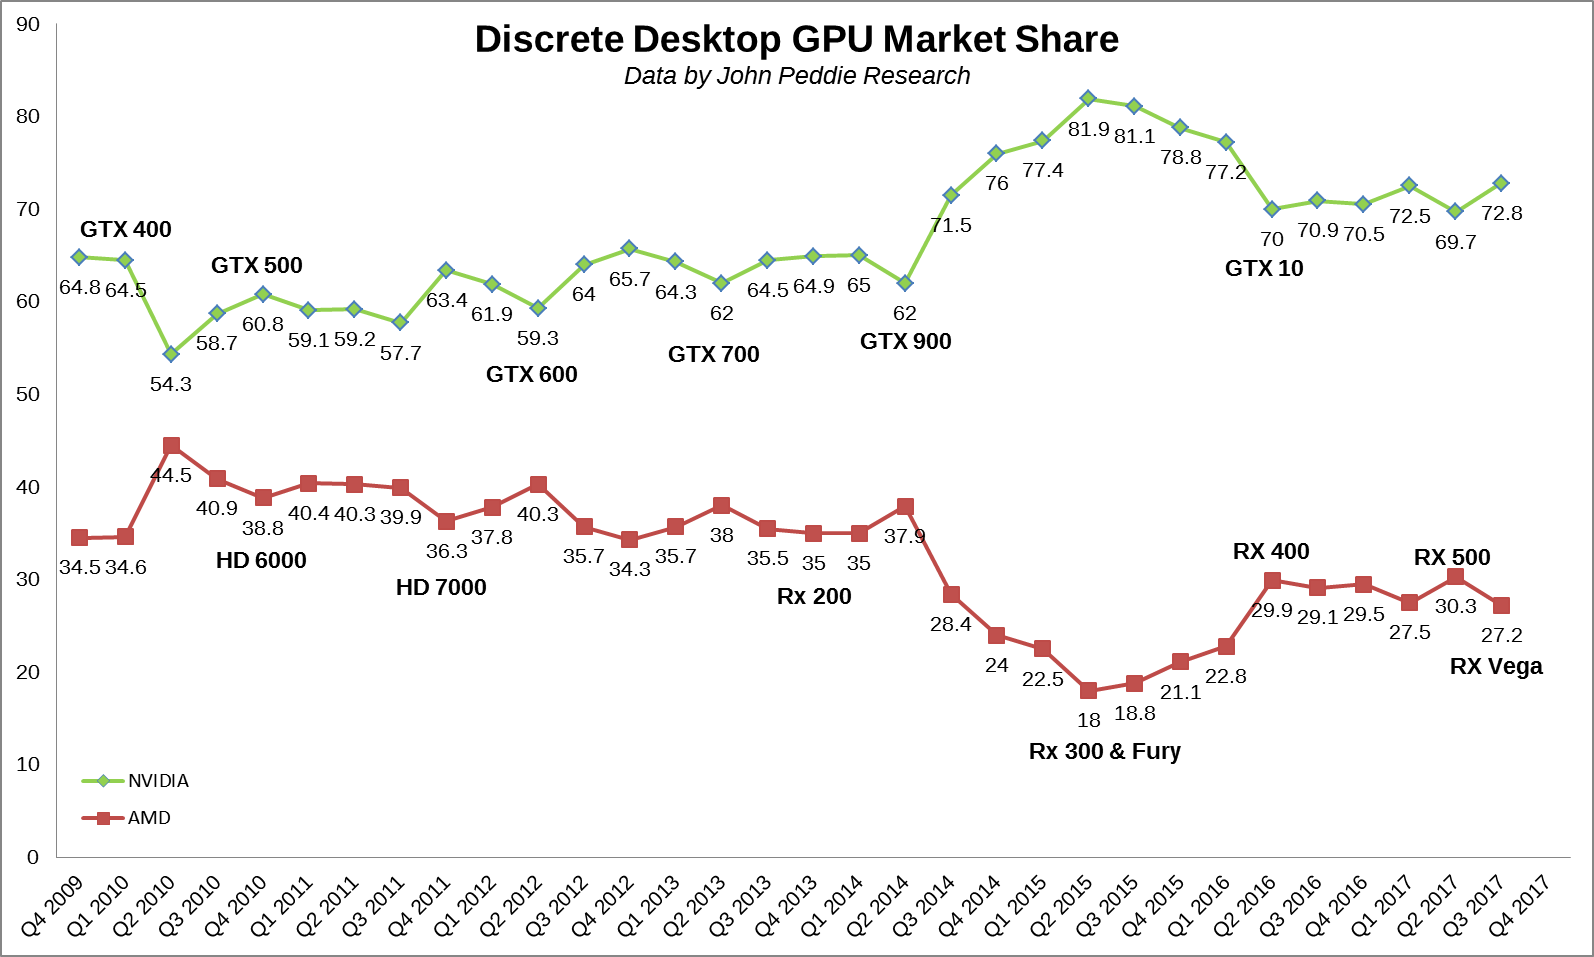 Cryptomining Demand Wanes As Q3 2017 Discrete Graphics Cards Shipments Hit 5 Year High